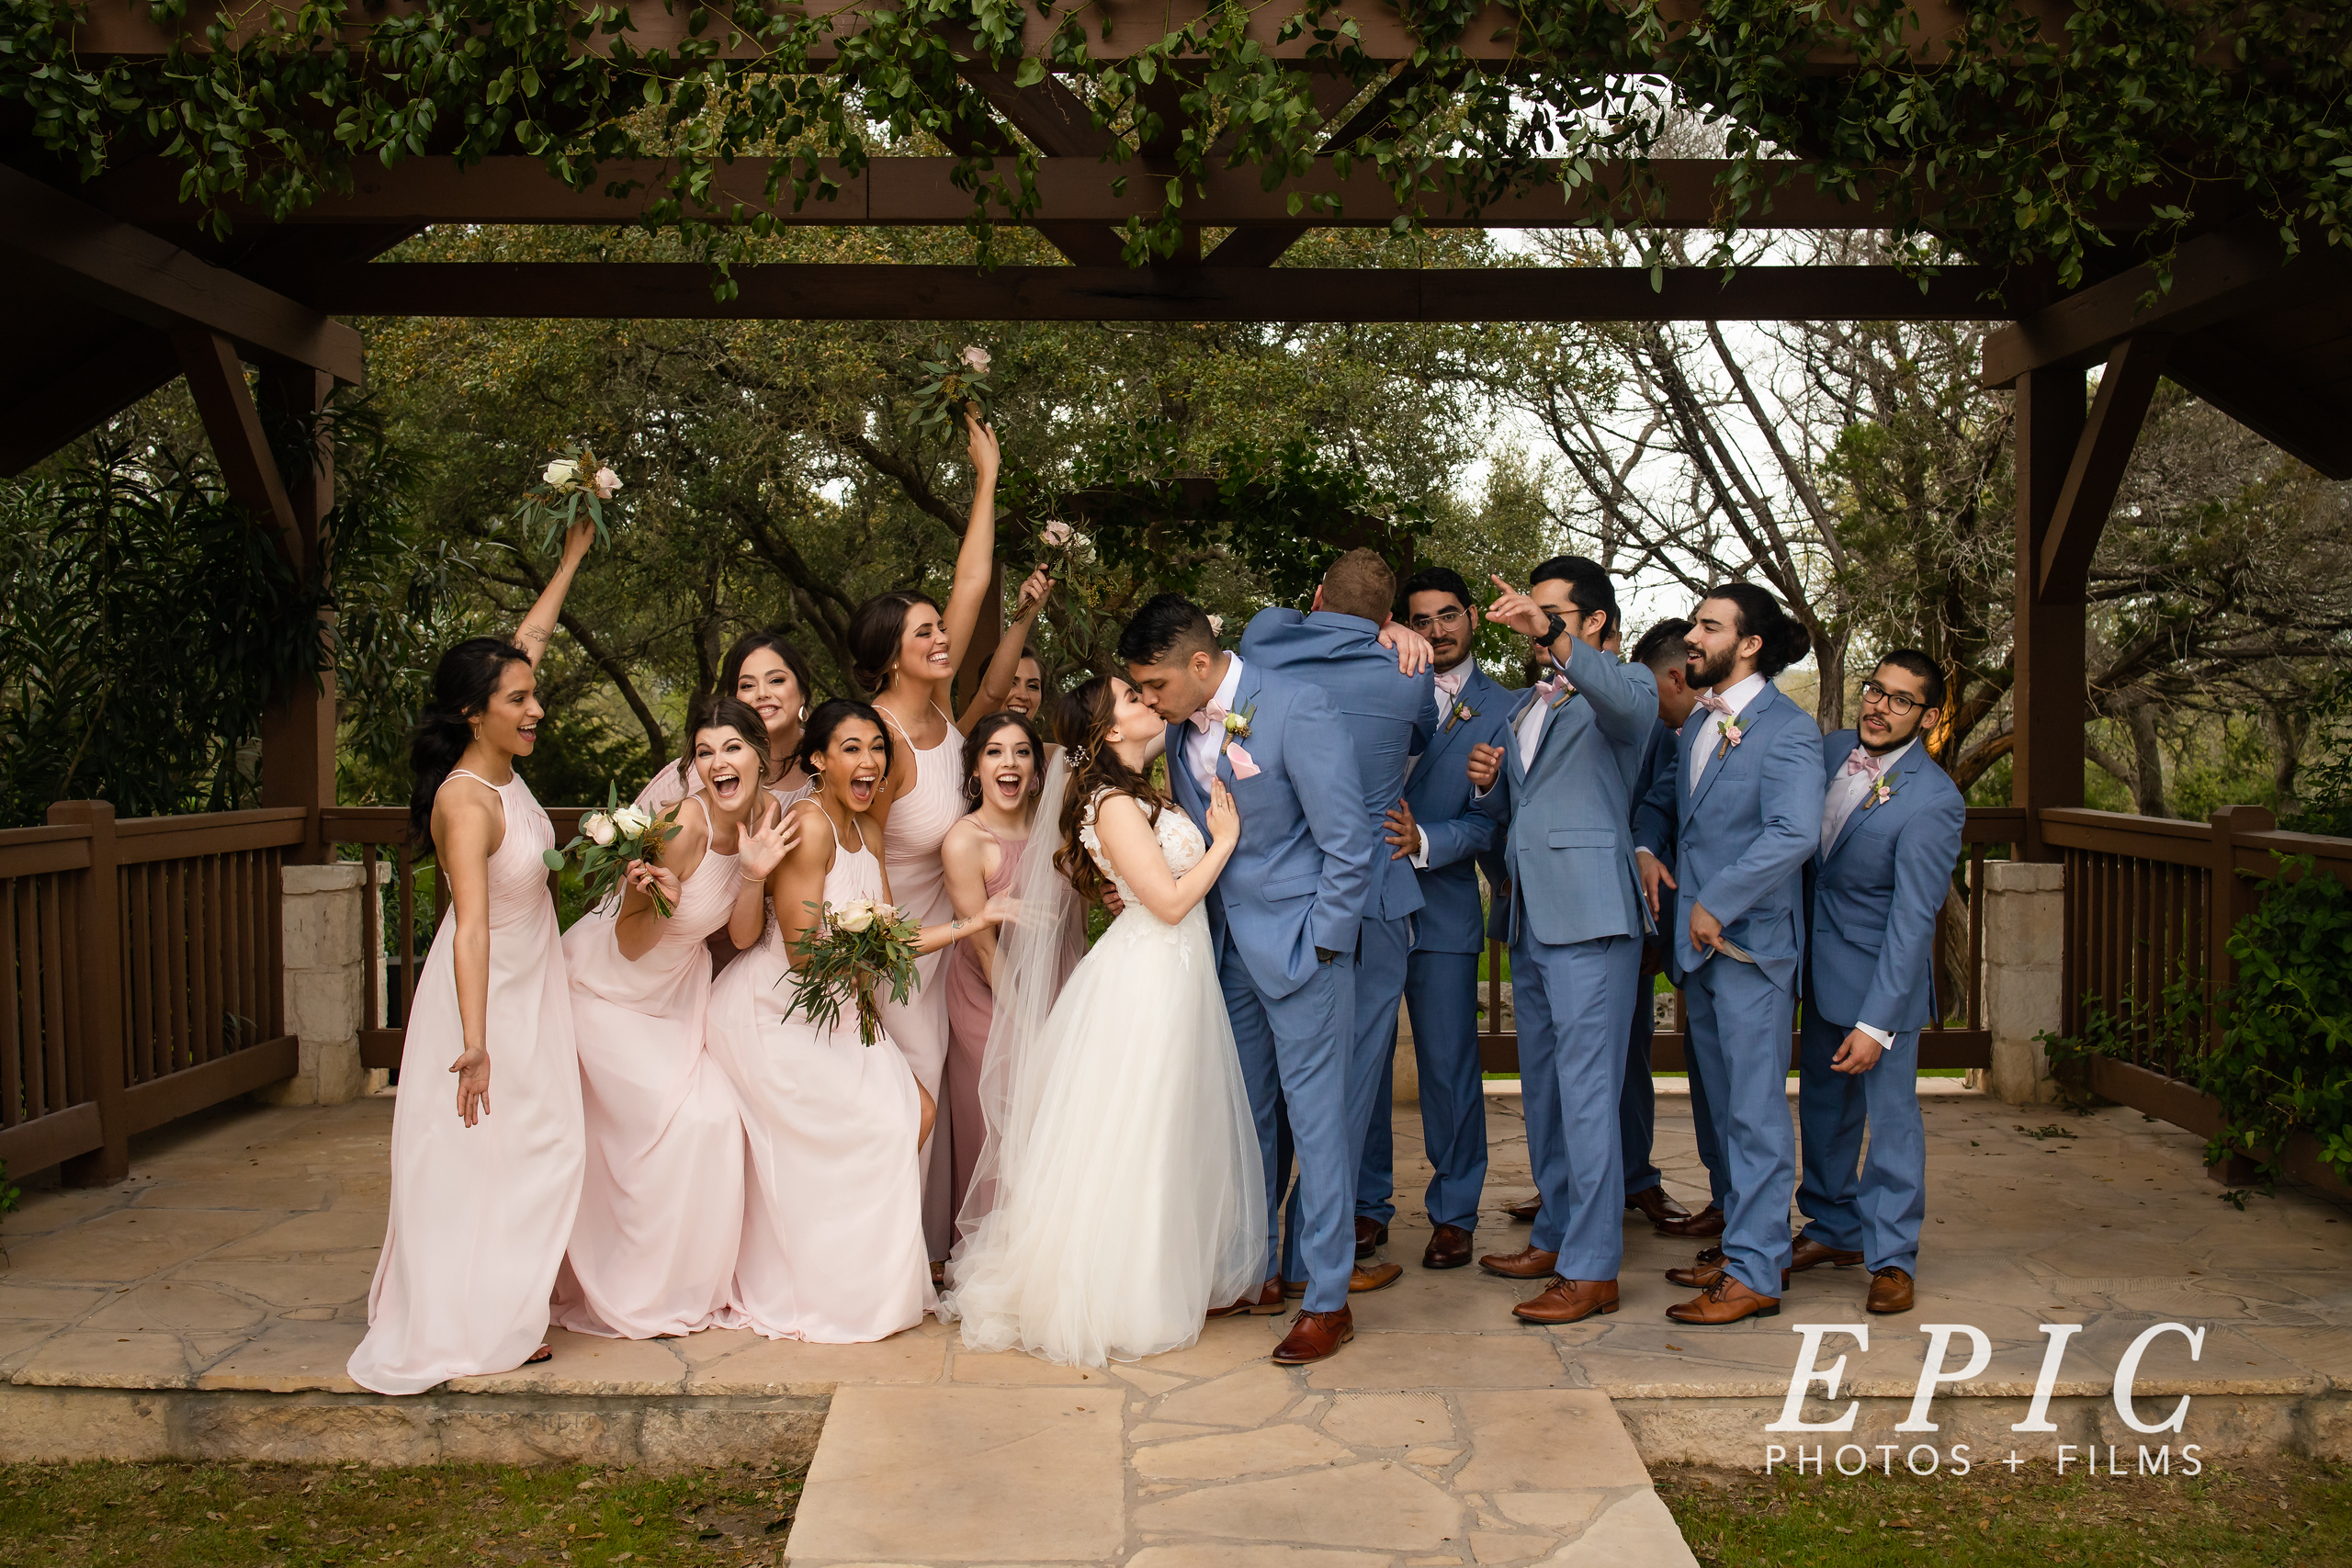 Fun group shot of the bridal party on the wedding day at The Milestone in New Braunfels, Texas